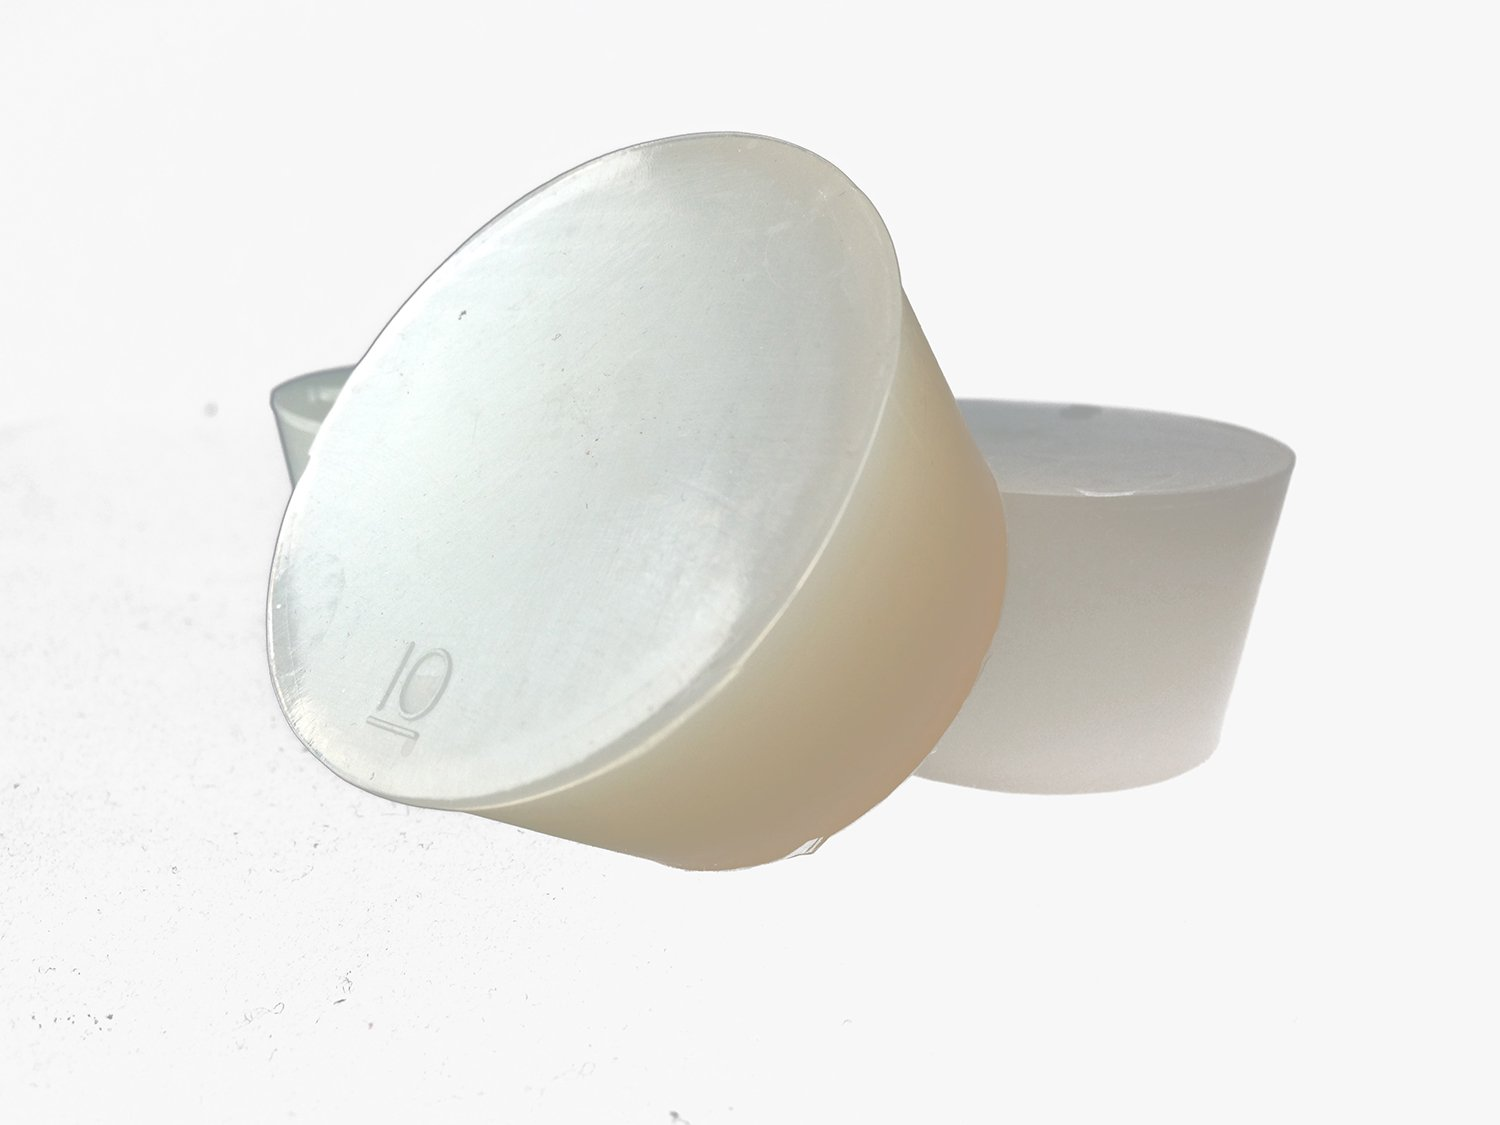 KMICO #10 Clear Silicone Rubber Stopper